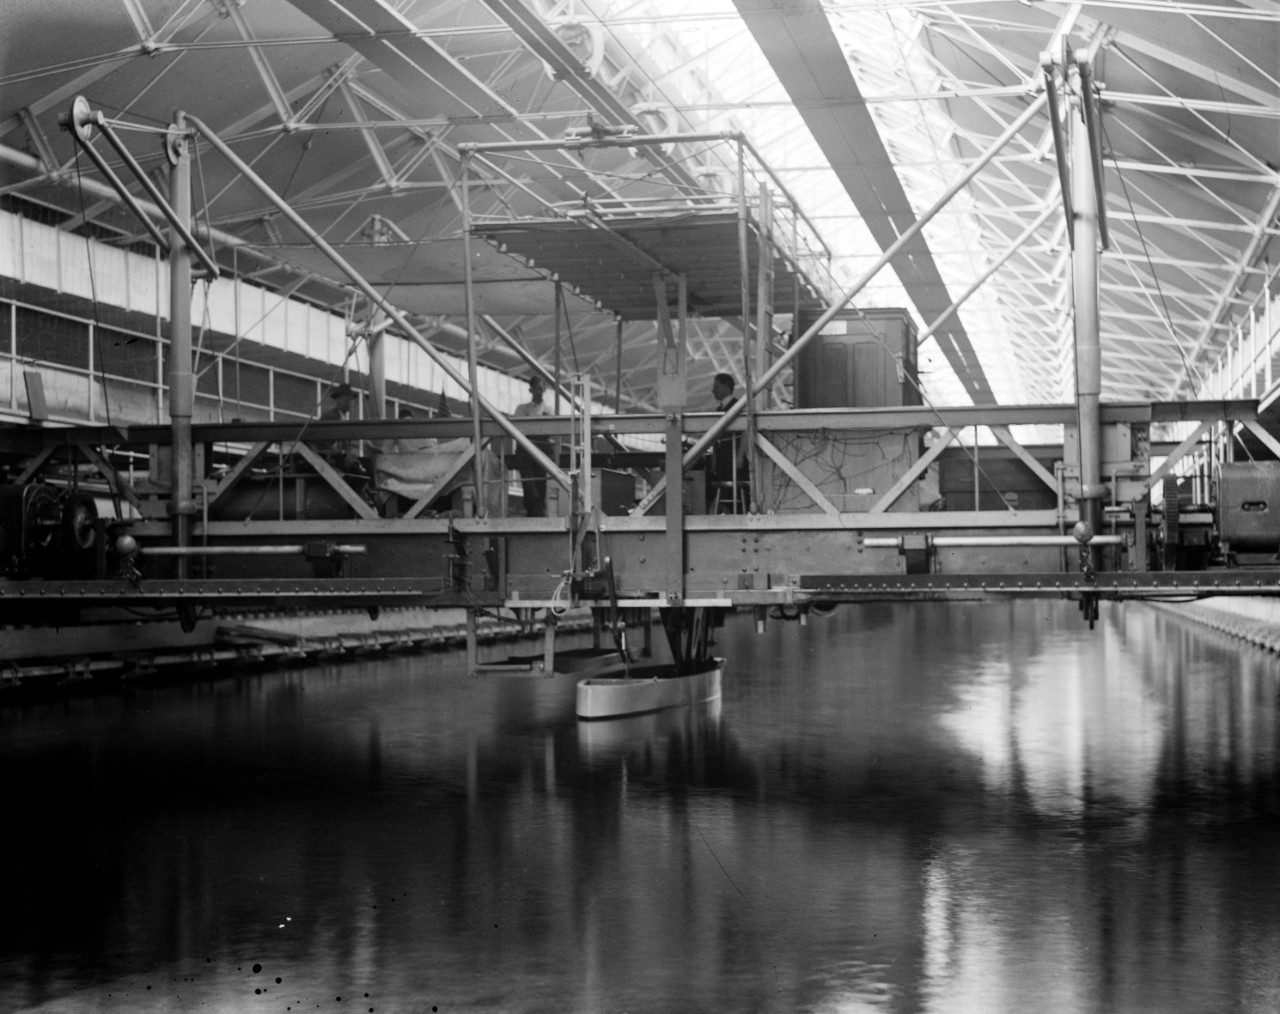 LC-DIG-NPCC-00823:  Experimental Model Basin, Washington Navy Yard, 1918.   Note man on platform.  The Model Basin is now the Cold War Gallery of the National Museum of the U.S. Navy.   Courtesy of the Library of Congress.